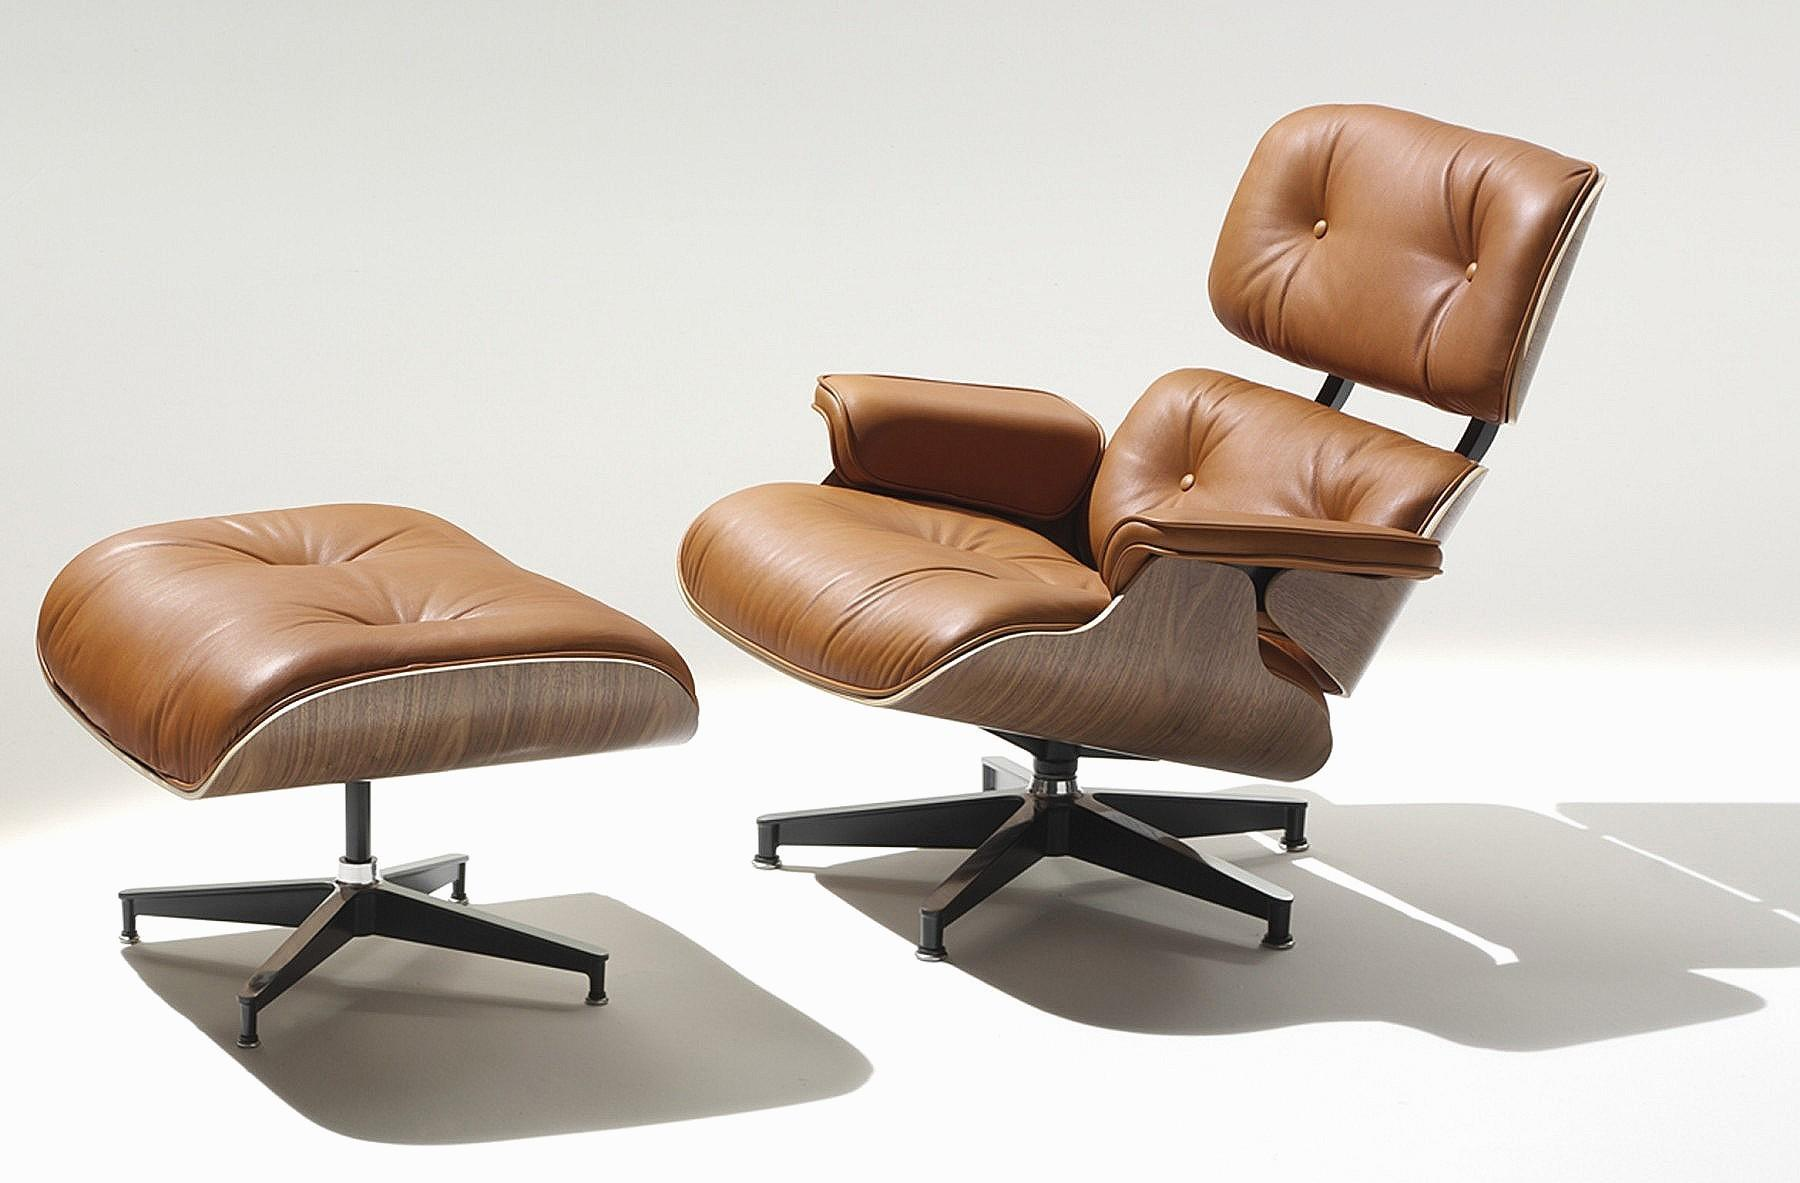 Eames Lounge Chair Luxury Furniture